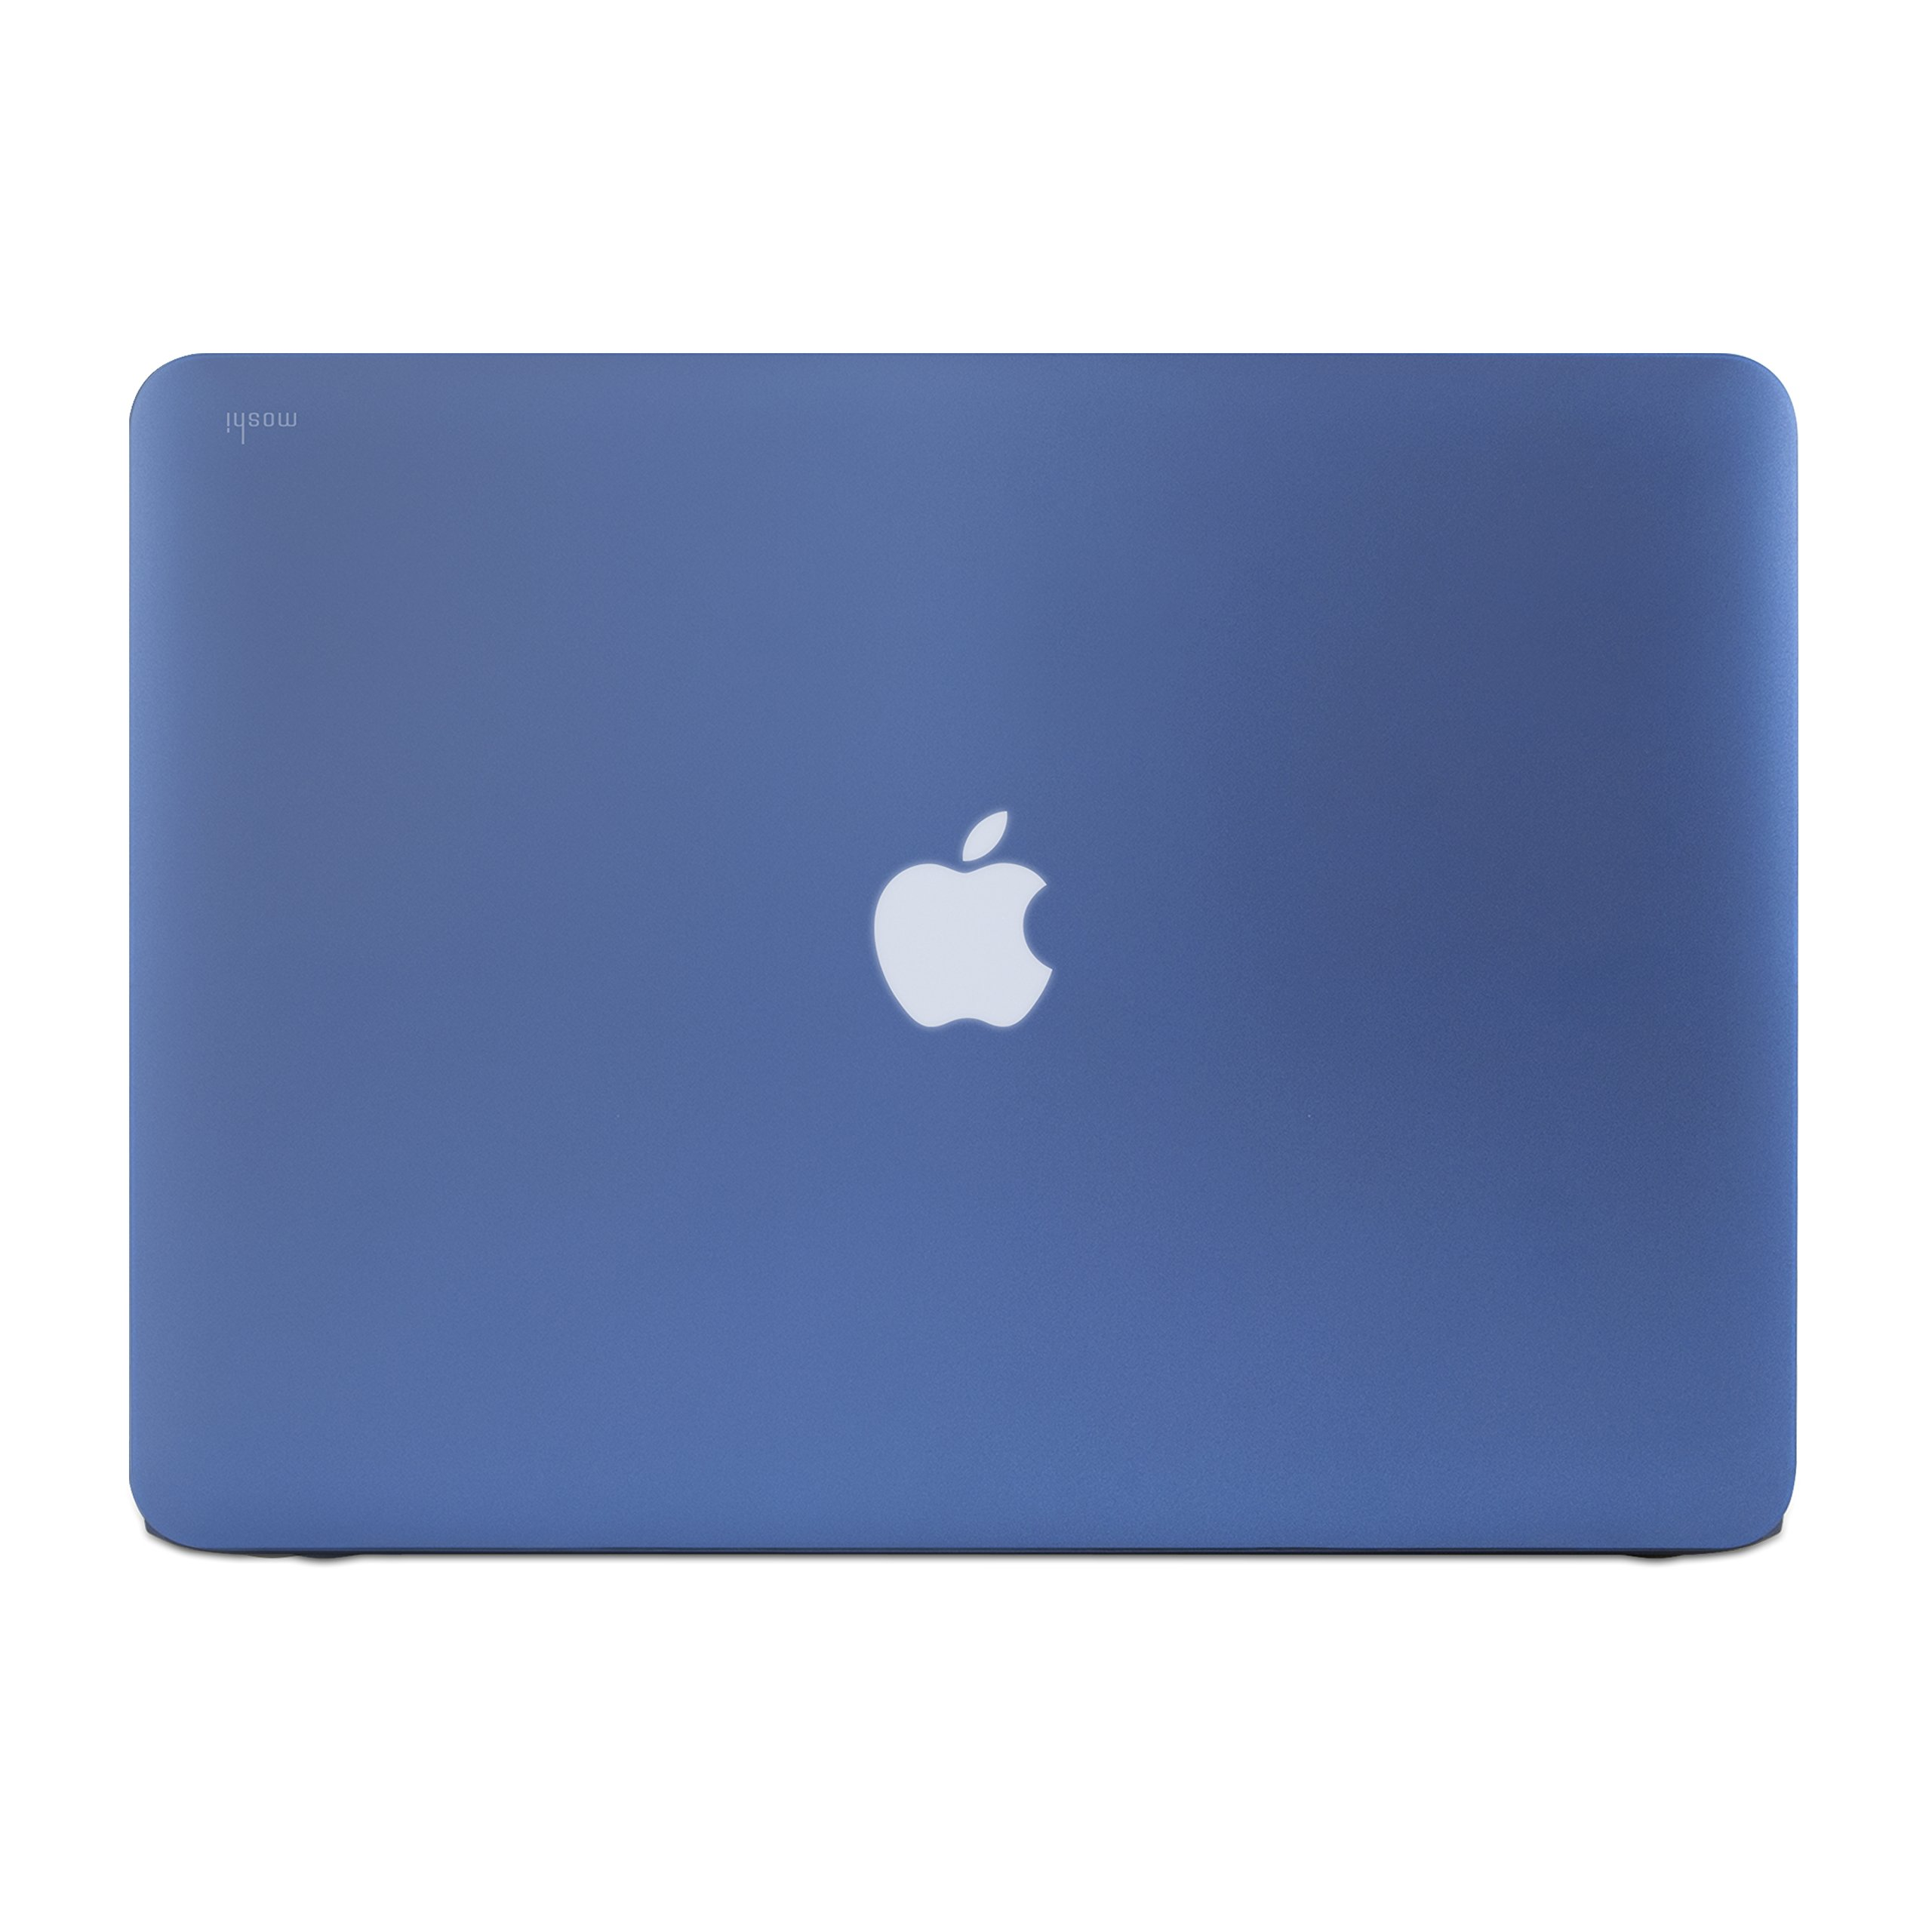 Moshi iGlaze Hard Case for MacBook Pro Retina 13'' (2012-2015) (Indigo Blue) by Moshi (Image #3)